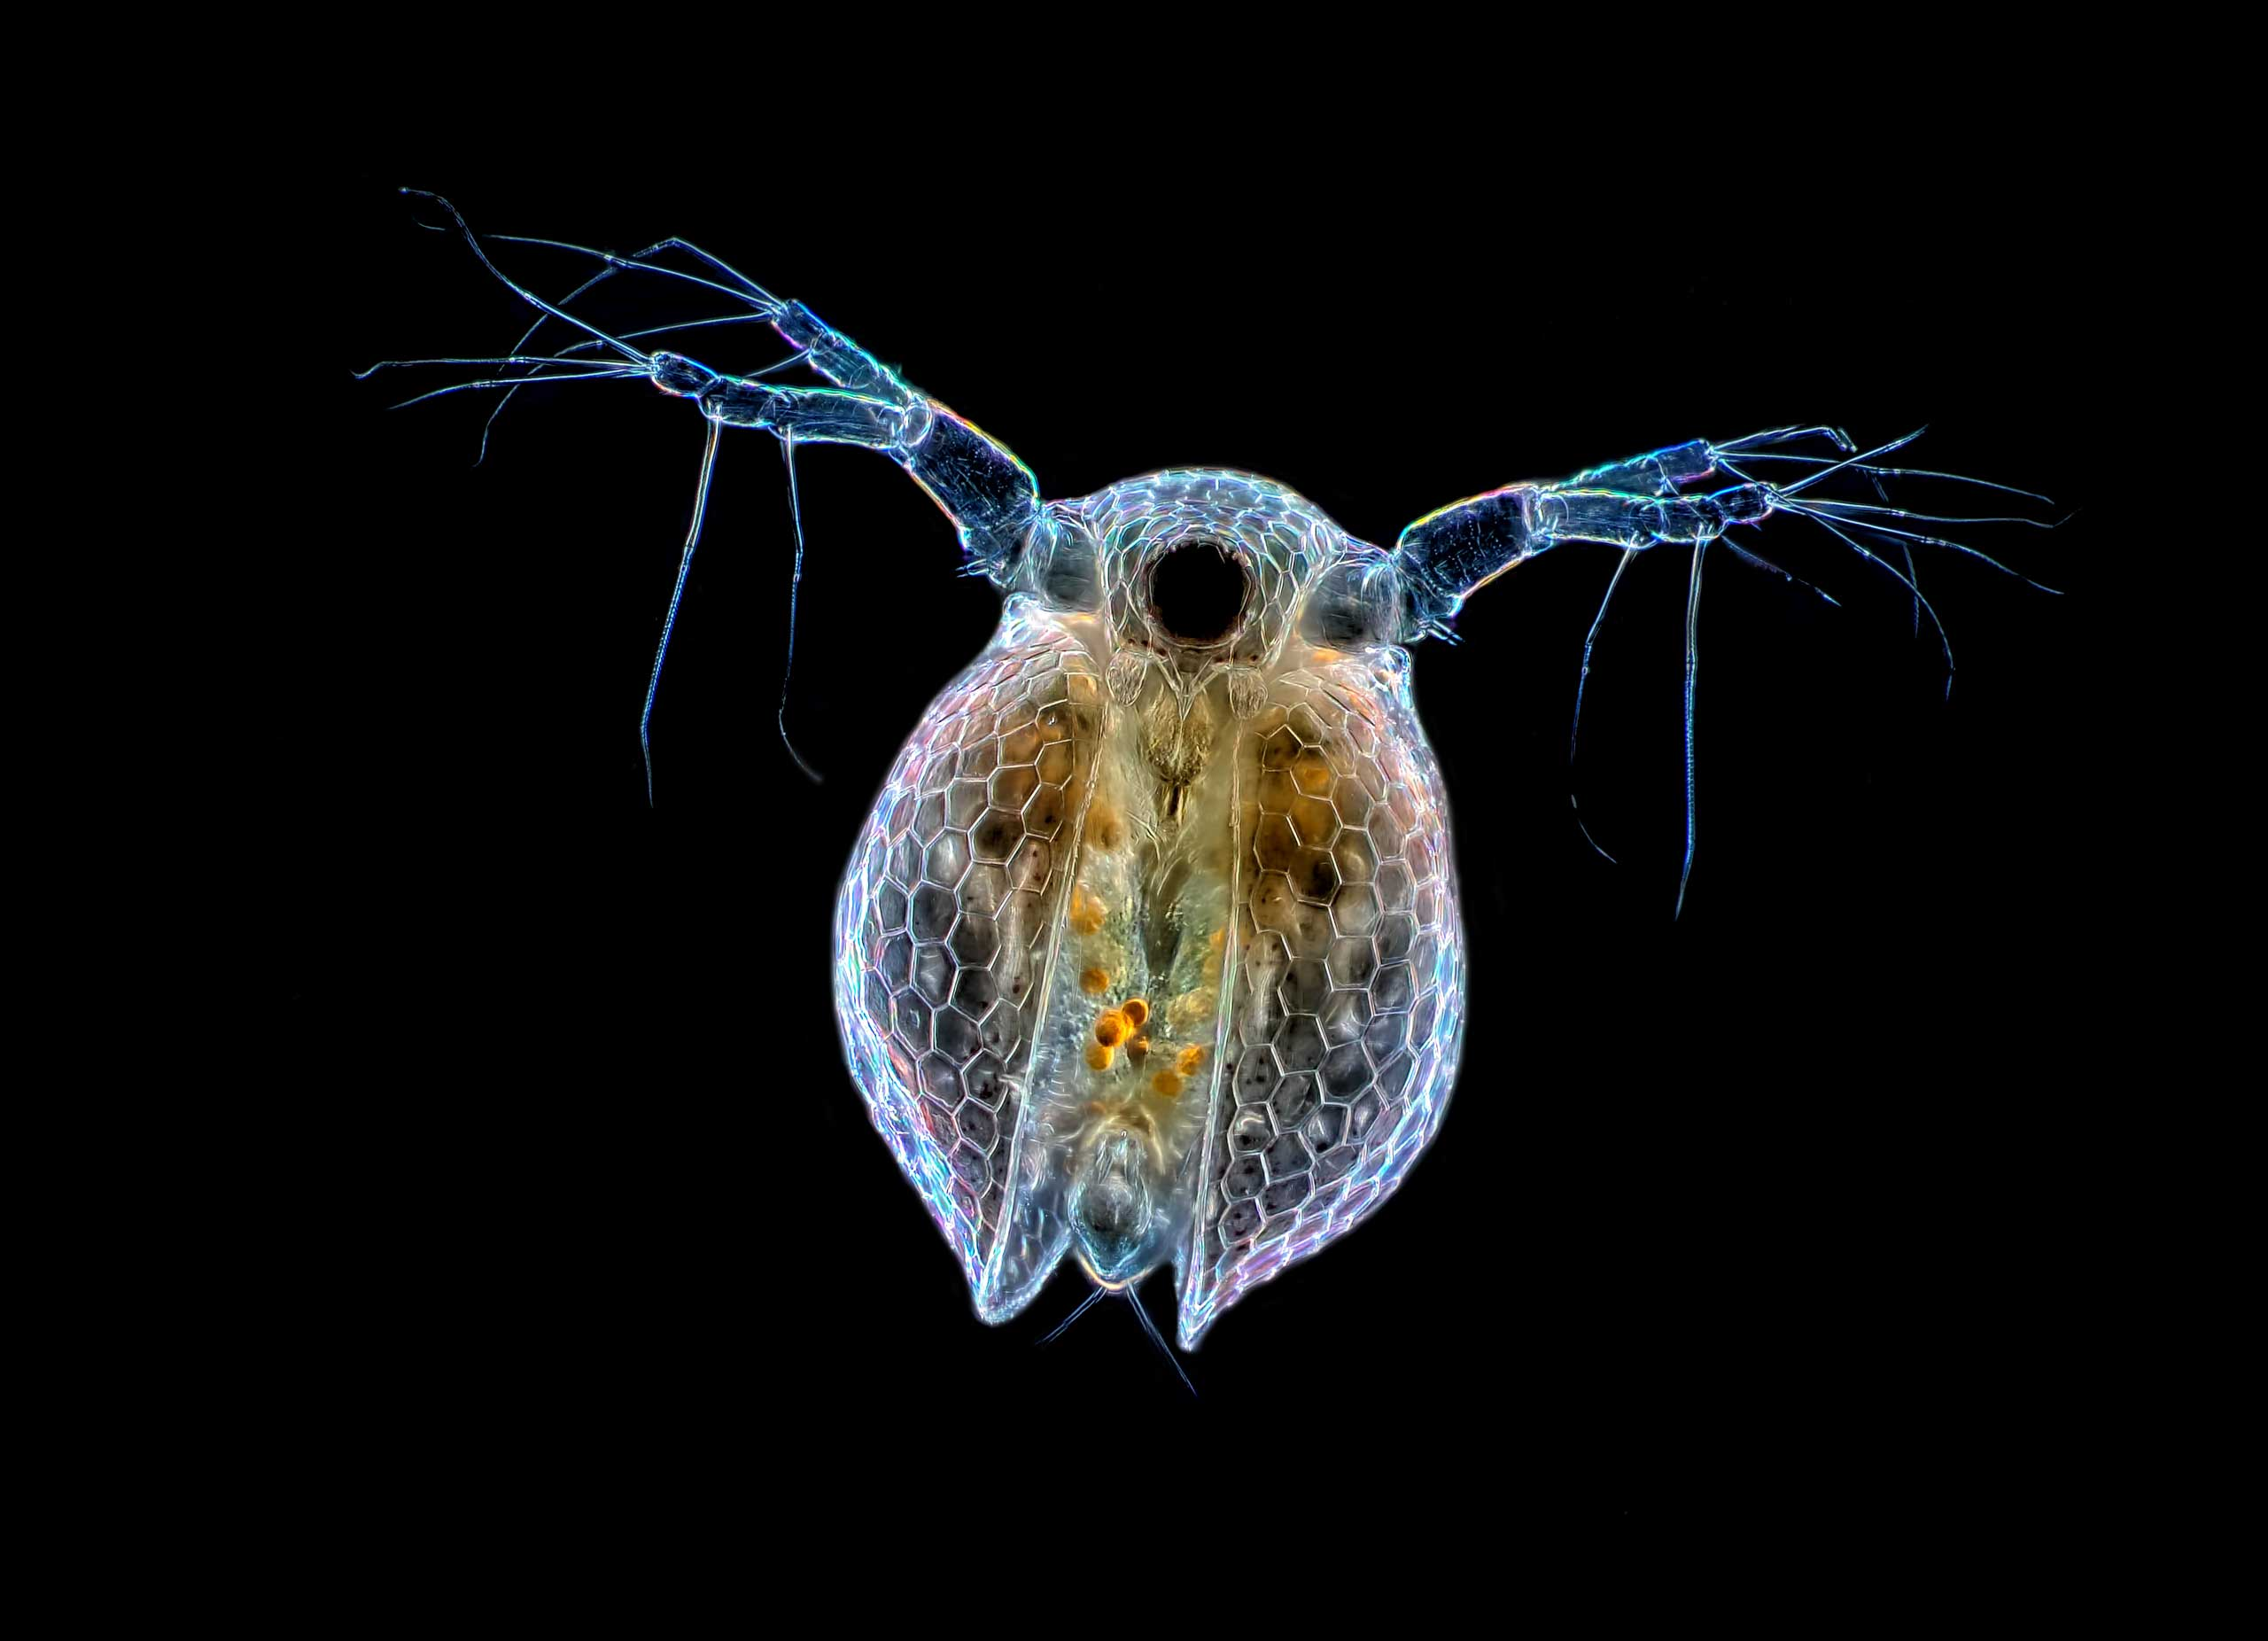 A Ceriodaphnia sp. (water flea) at 20x magnification.